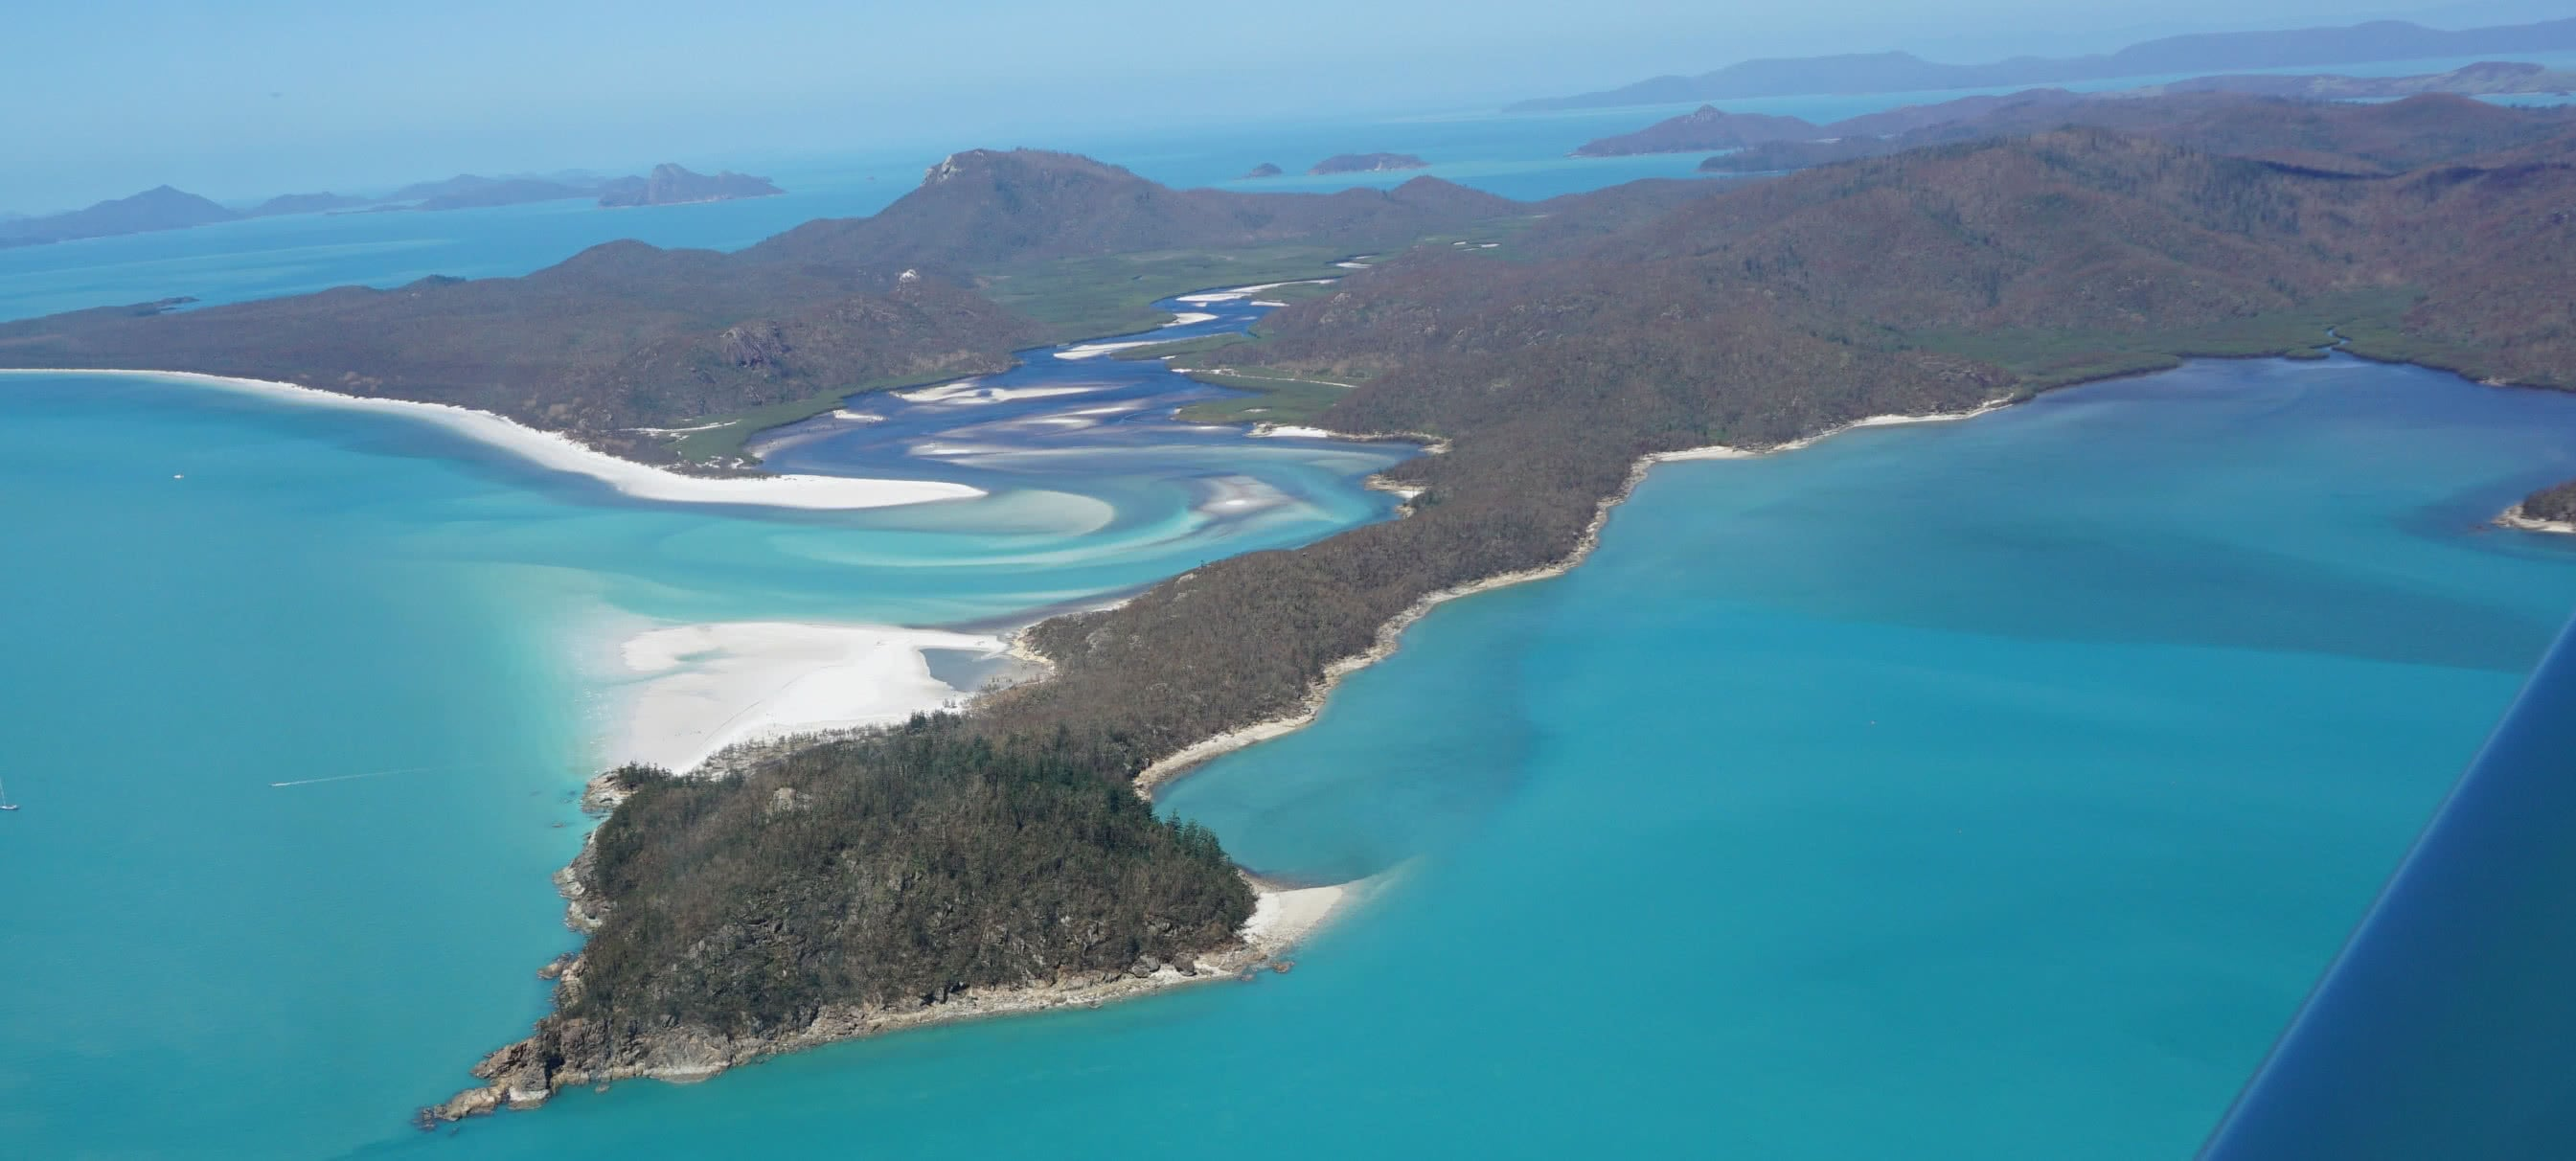 Whitsundays is open for business